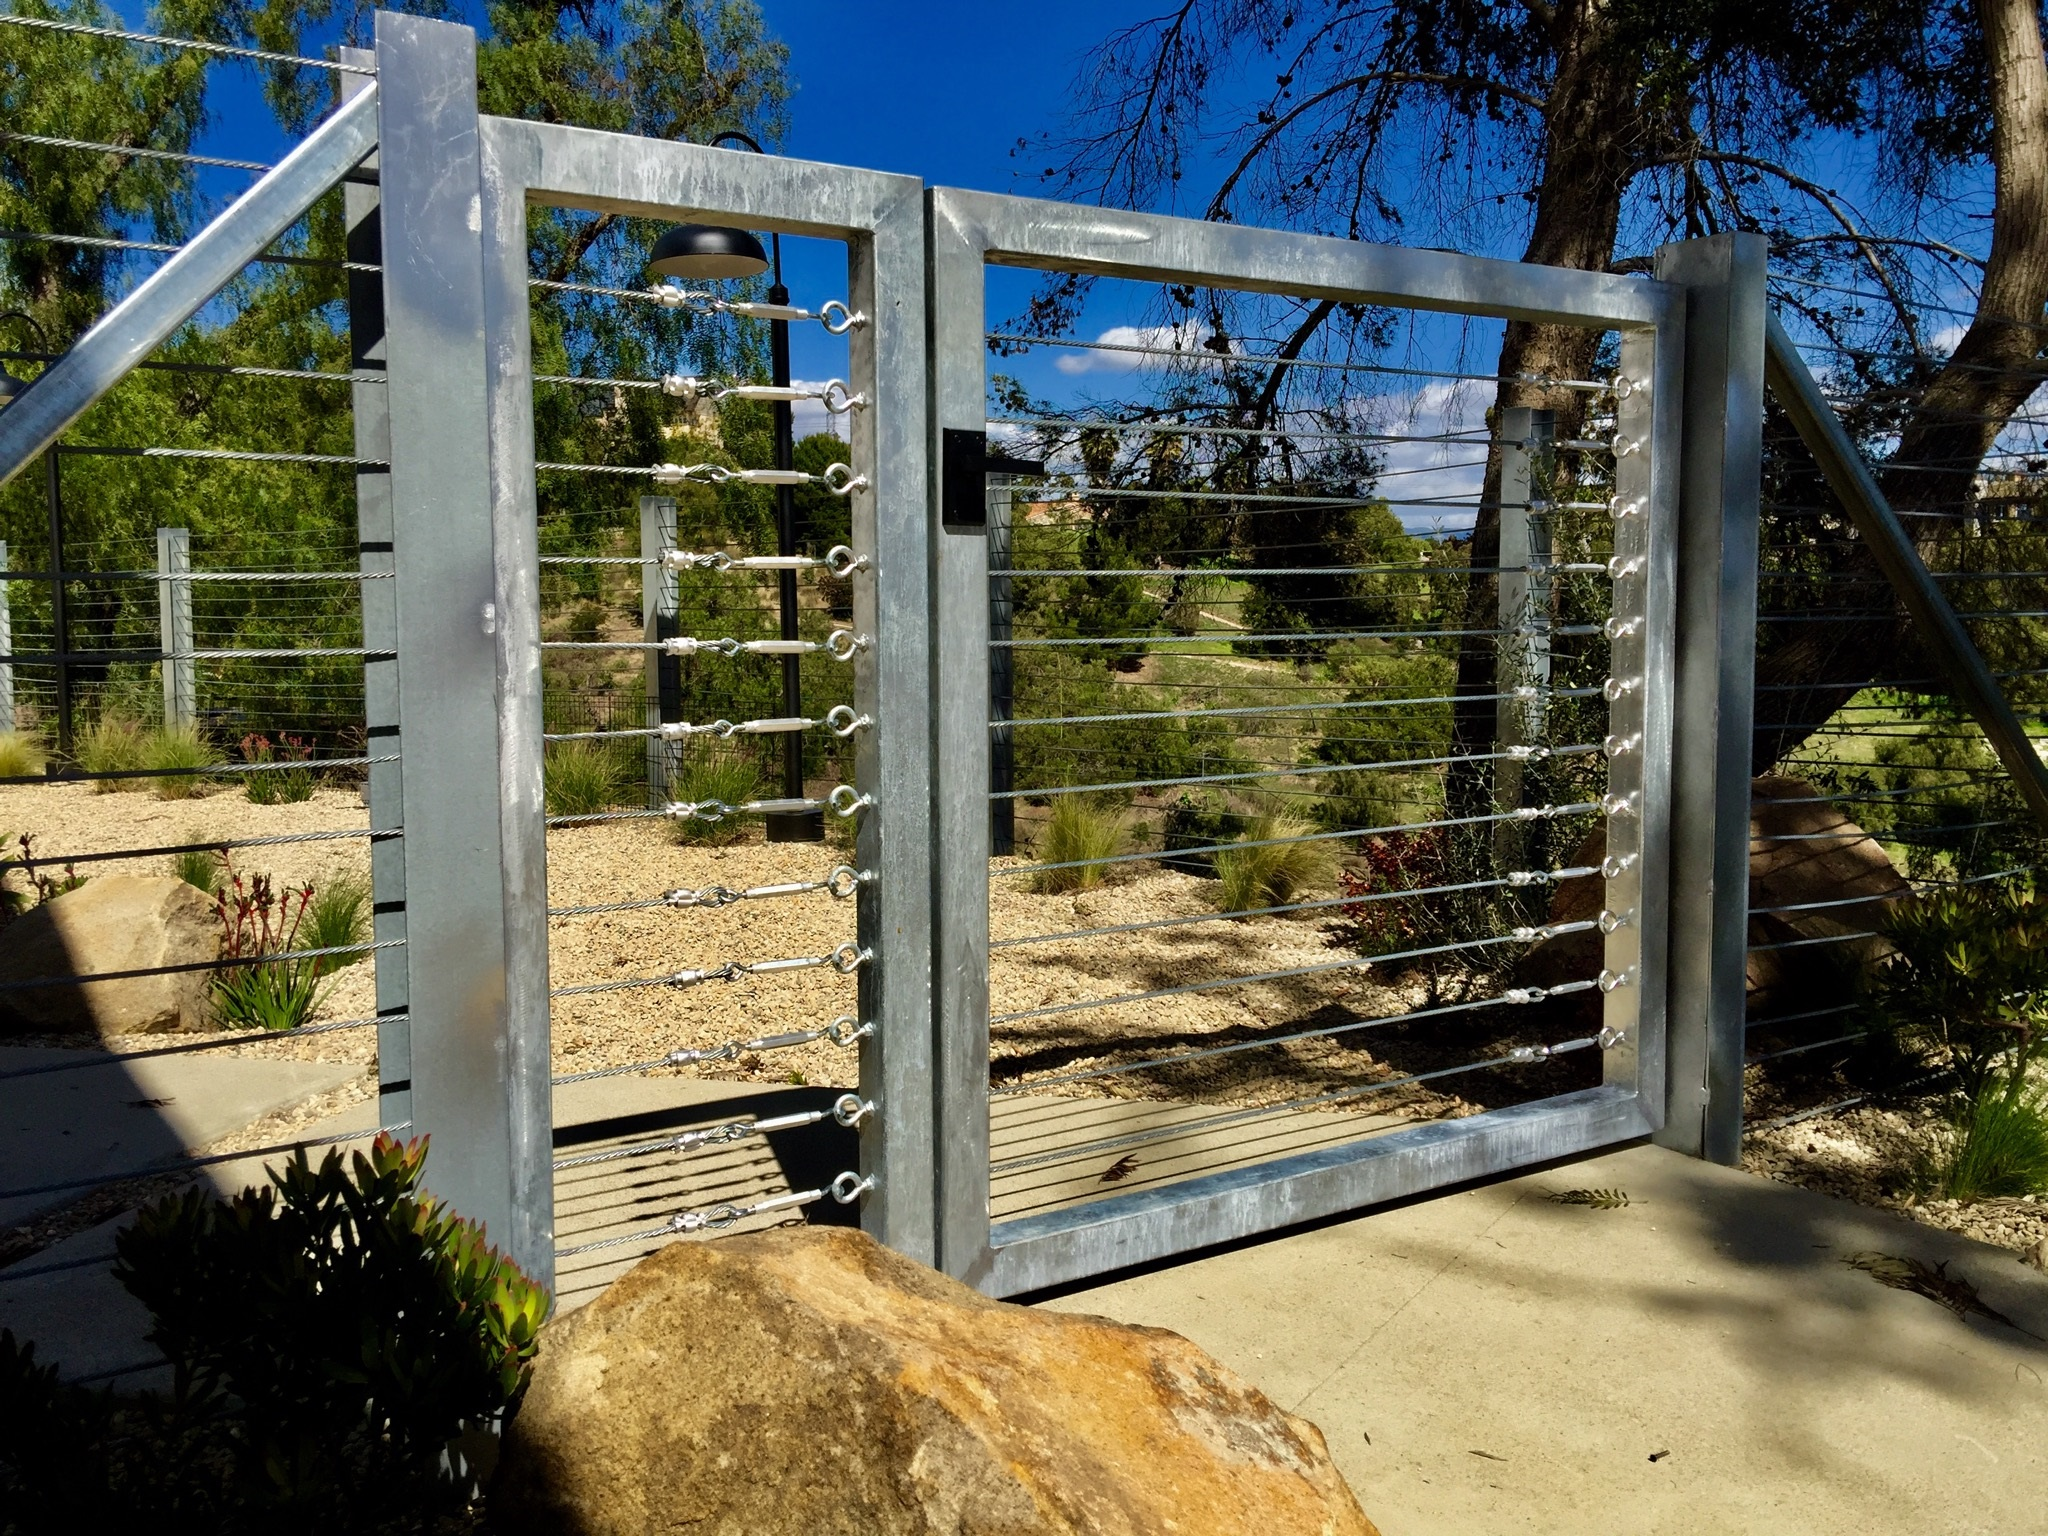 stainless-steel-gate-fence-with-nero-modern-gate-latch.jpg